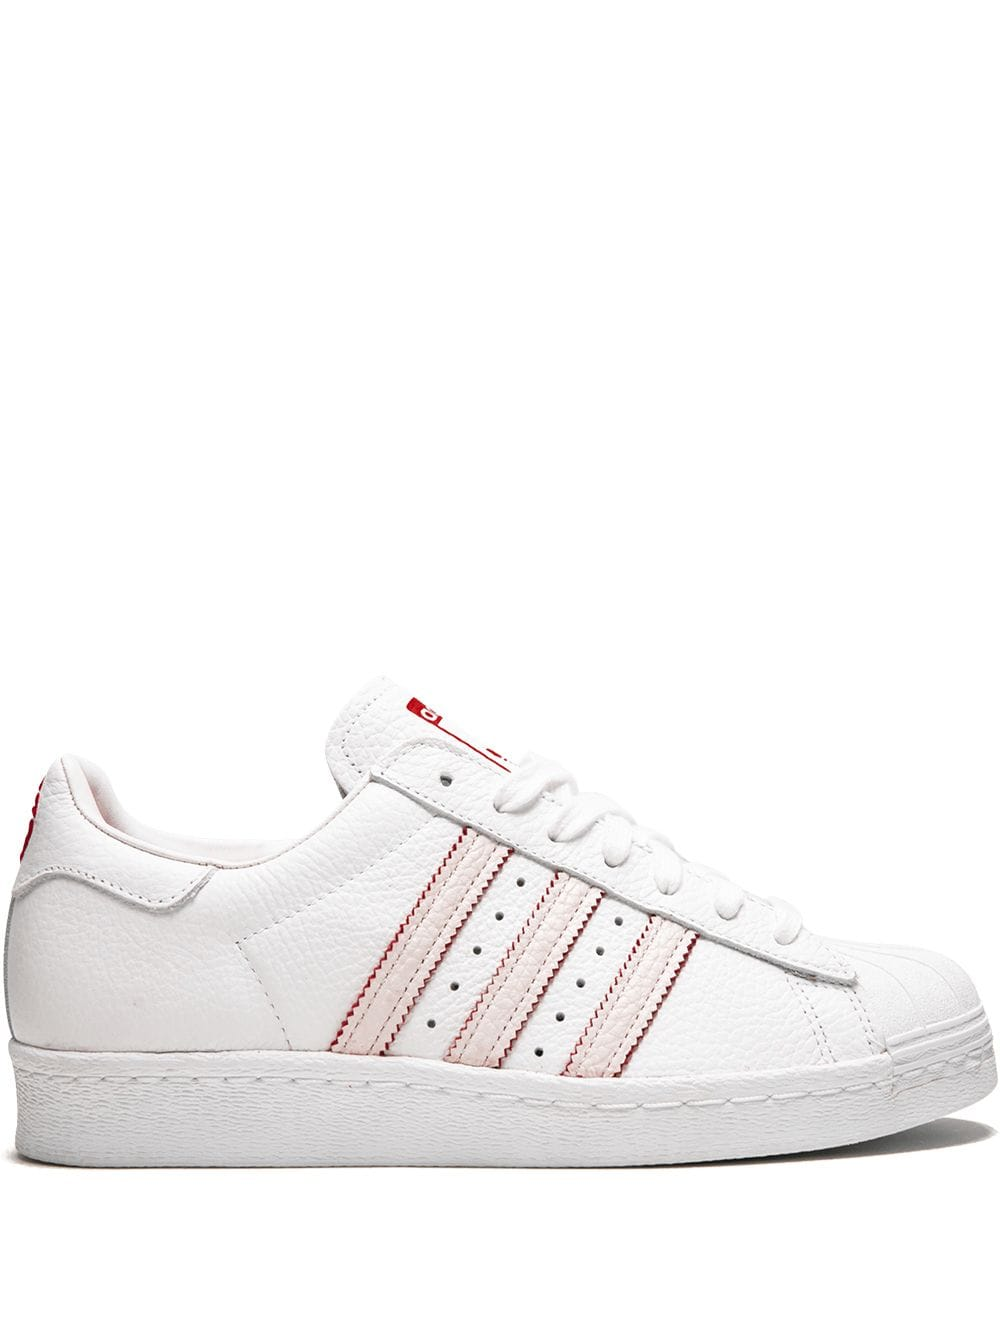 adidas Superstar 80s CNY sneakers - White von adidas